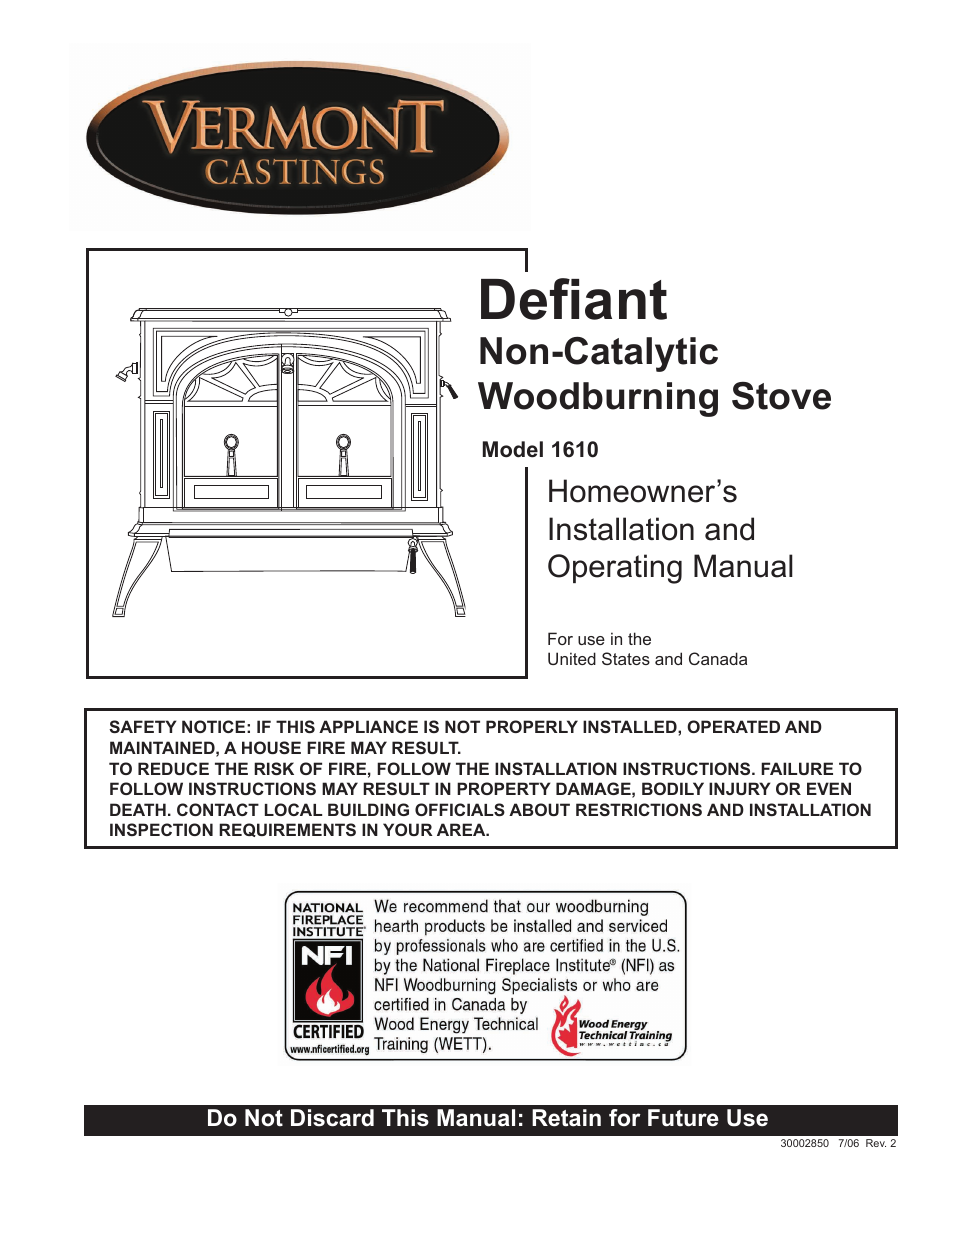 vermont casting 1610 user manual 40 pages rh manualsdir com vermont castings defiant repair manual Vermont Castings Defiant Model 1975